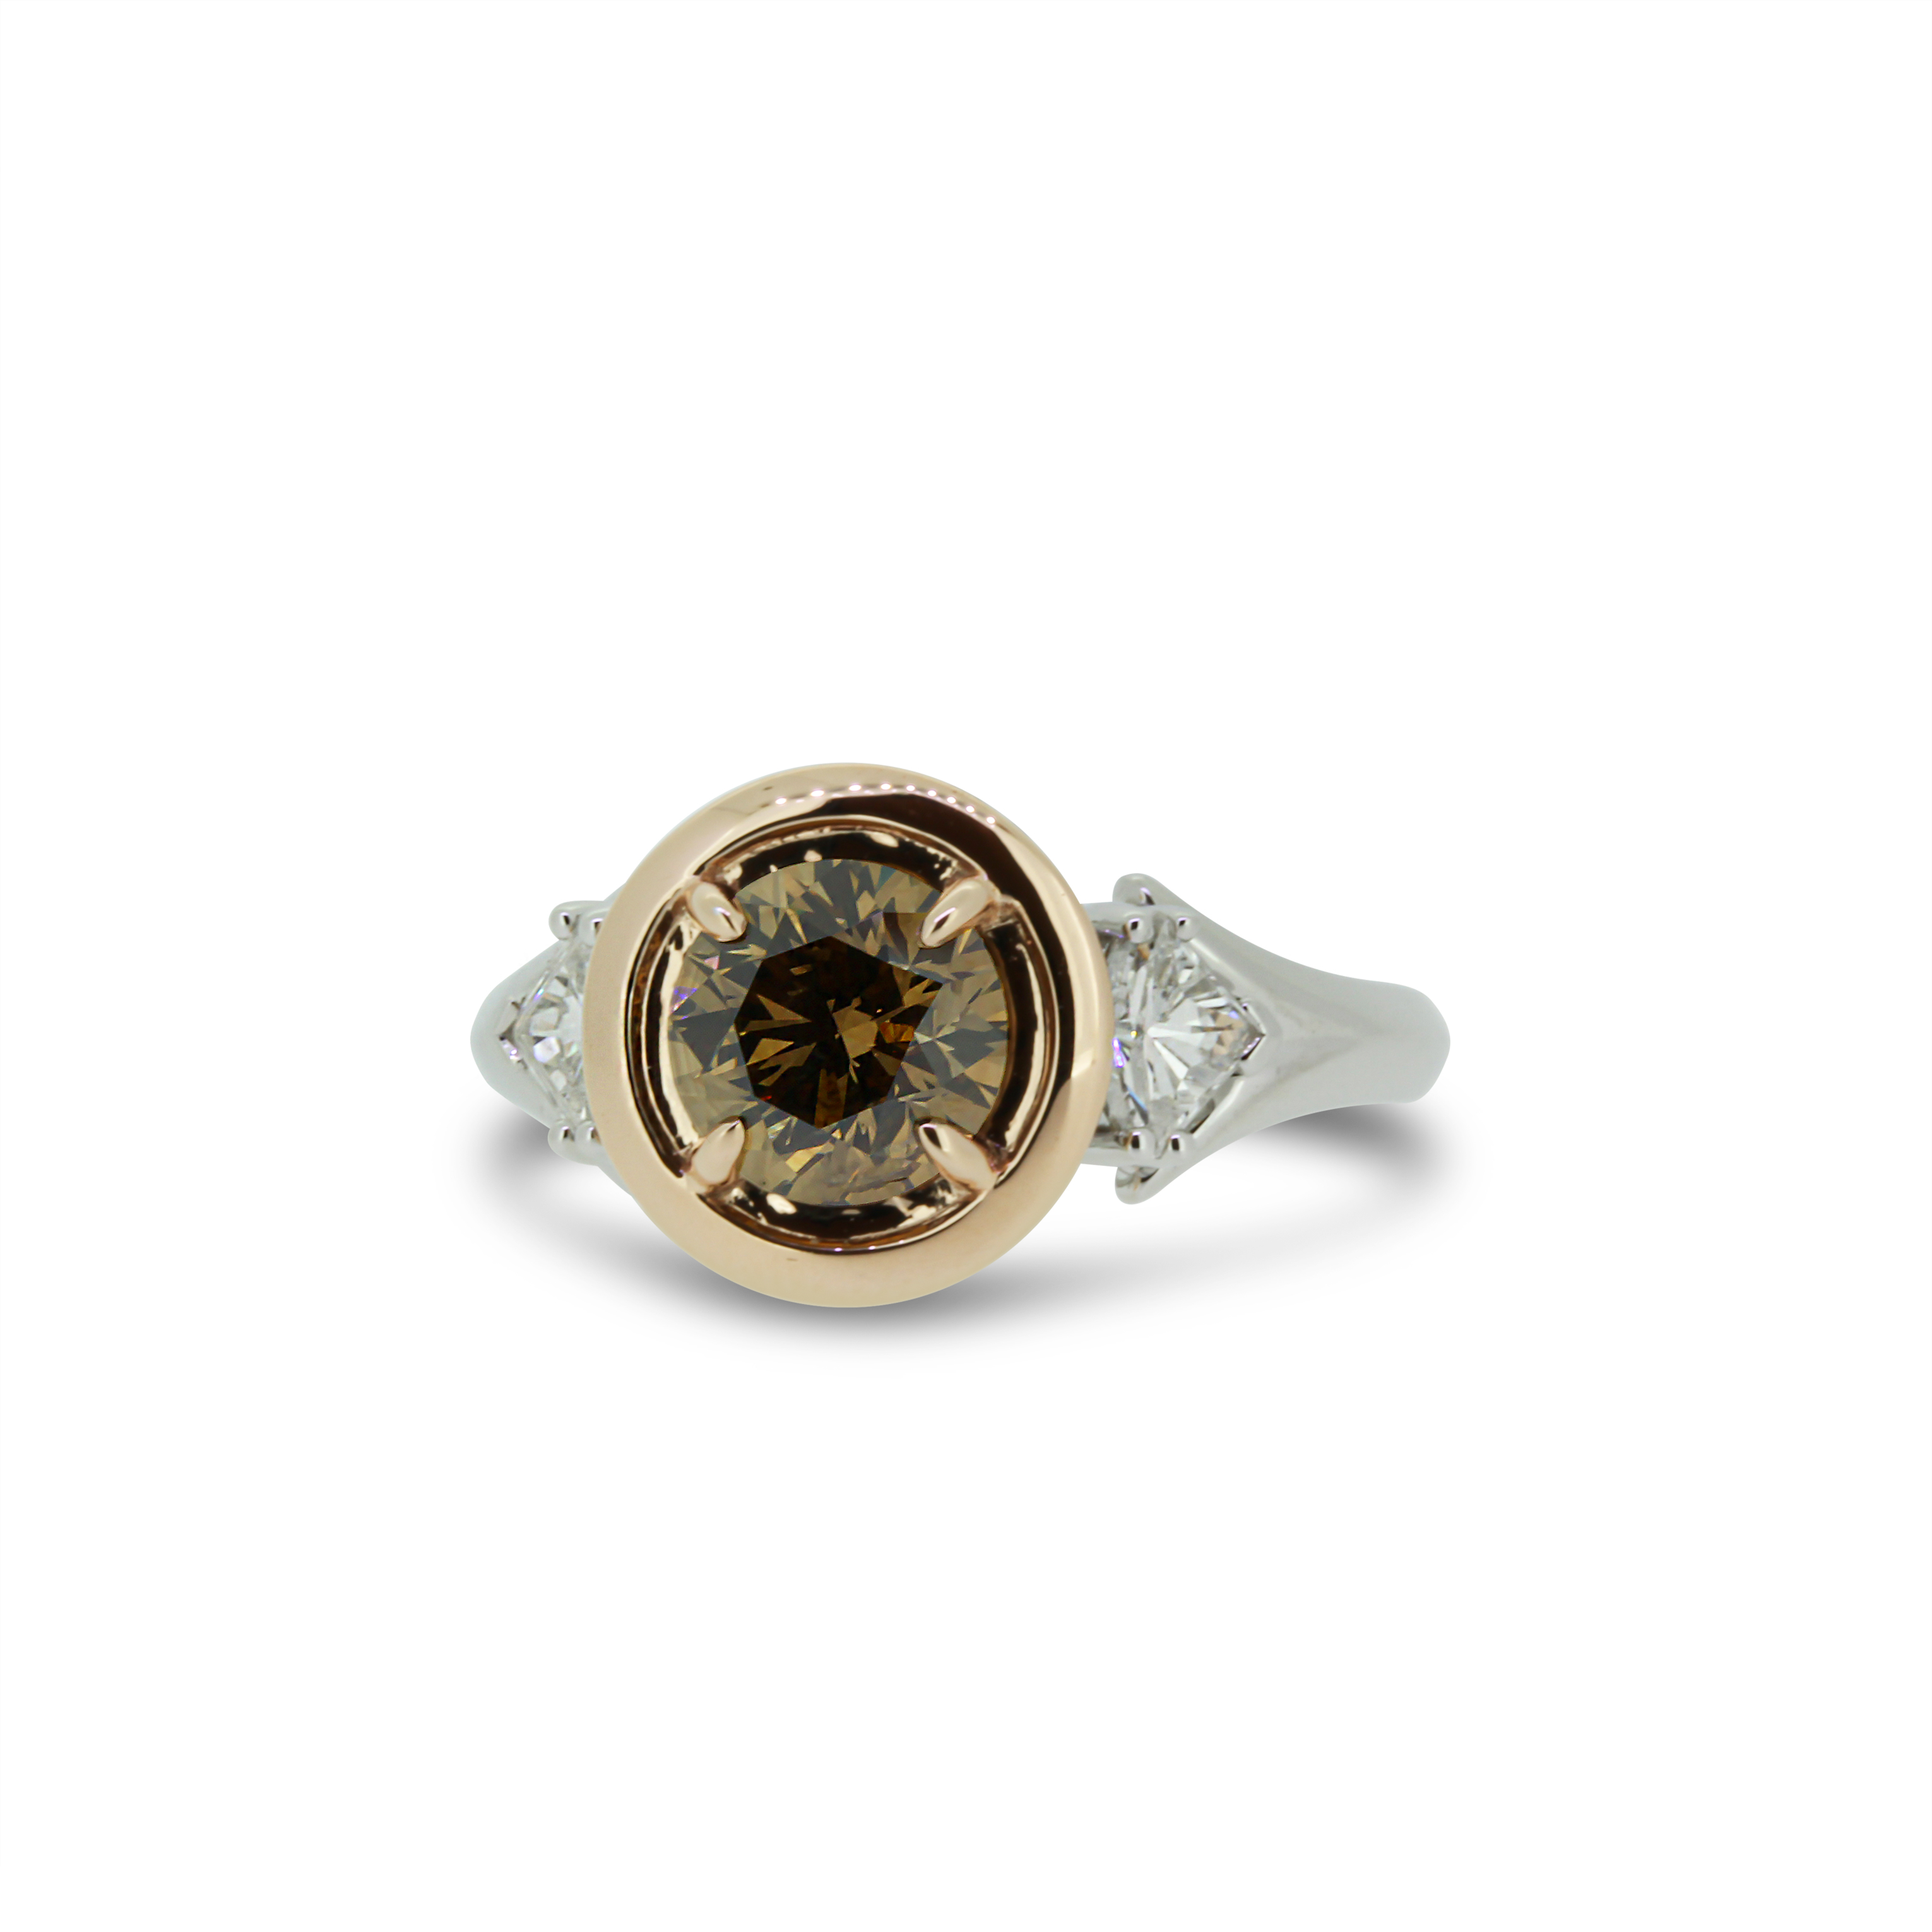 Round Brilliant Cut Cognac Diamond Ring in 18k White and Rose Gold